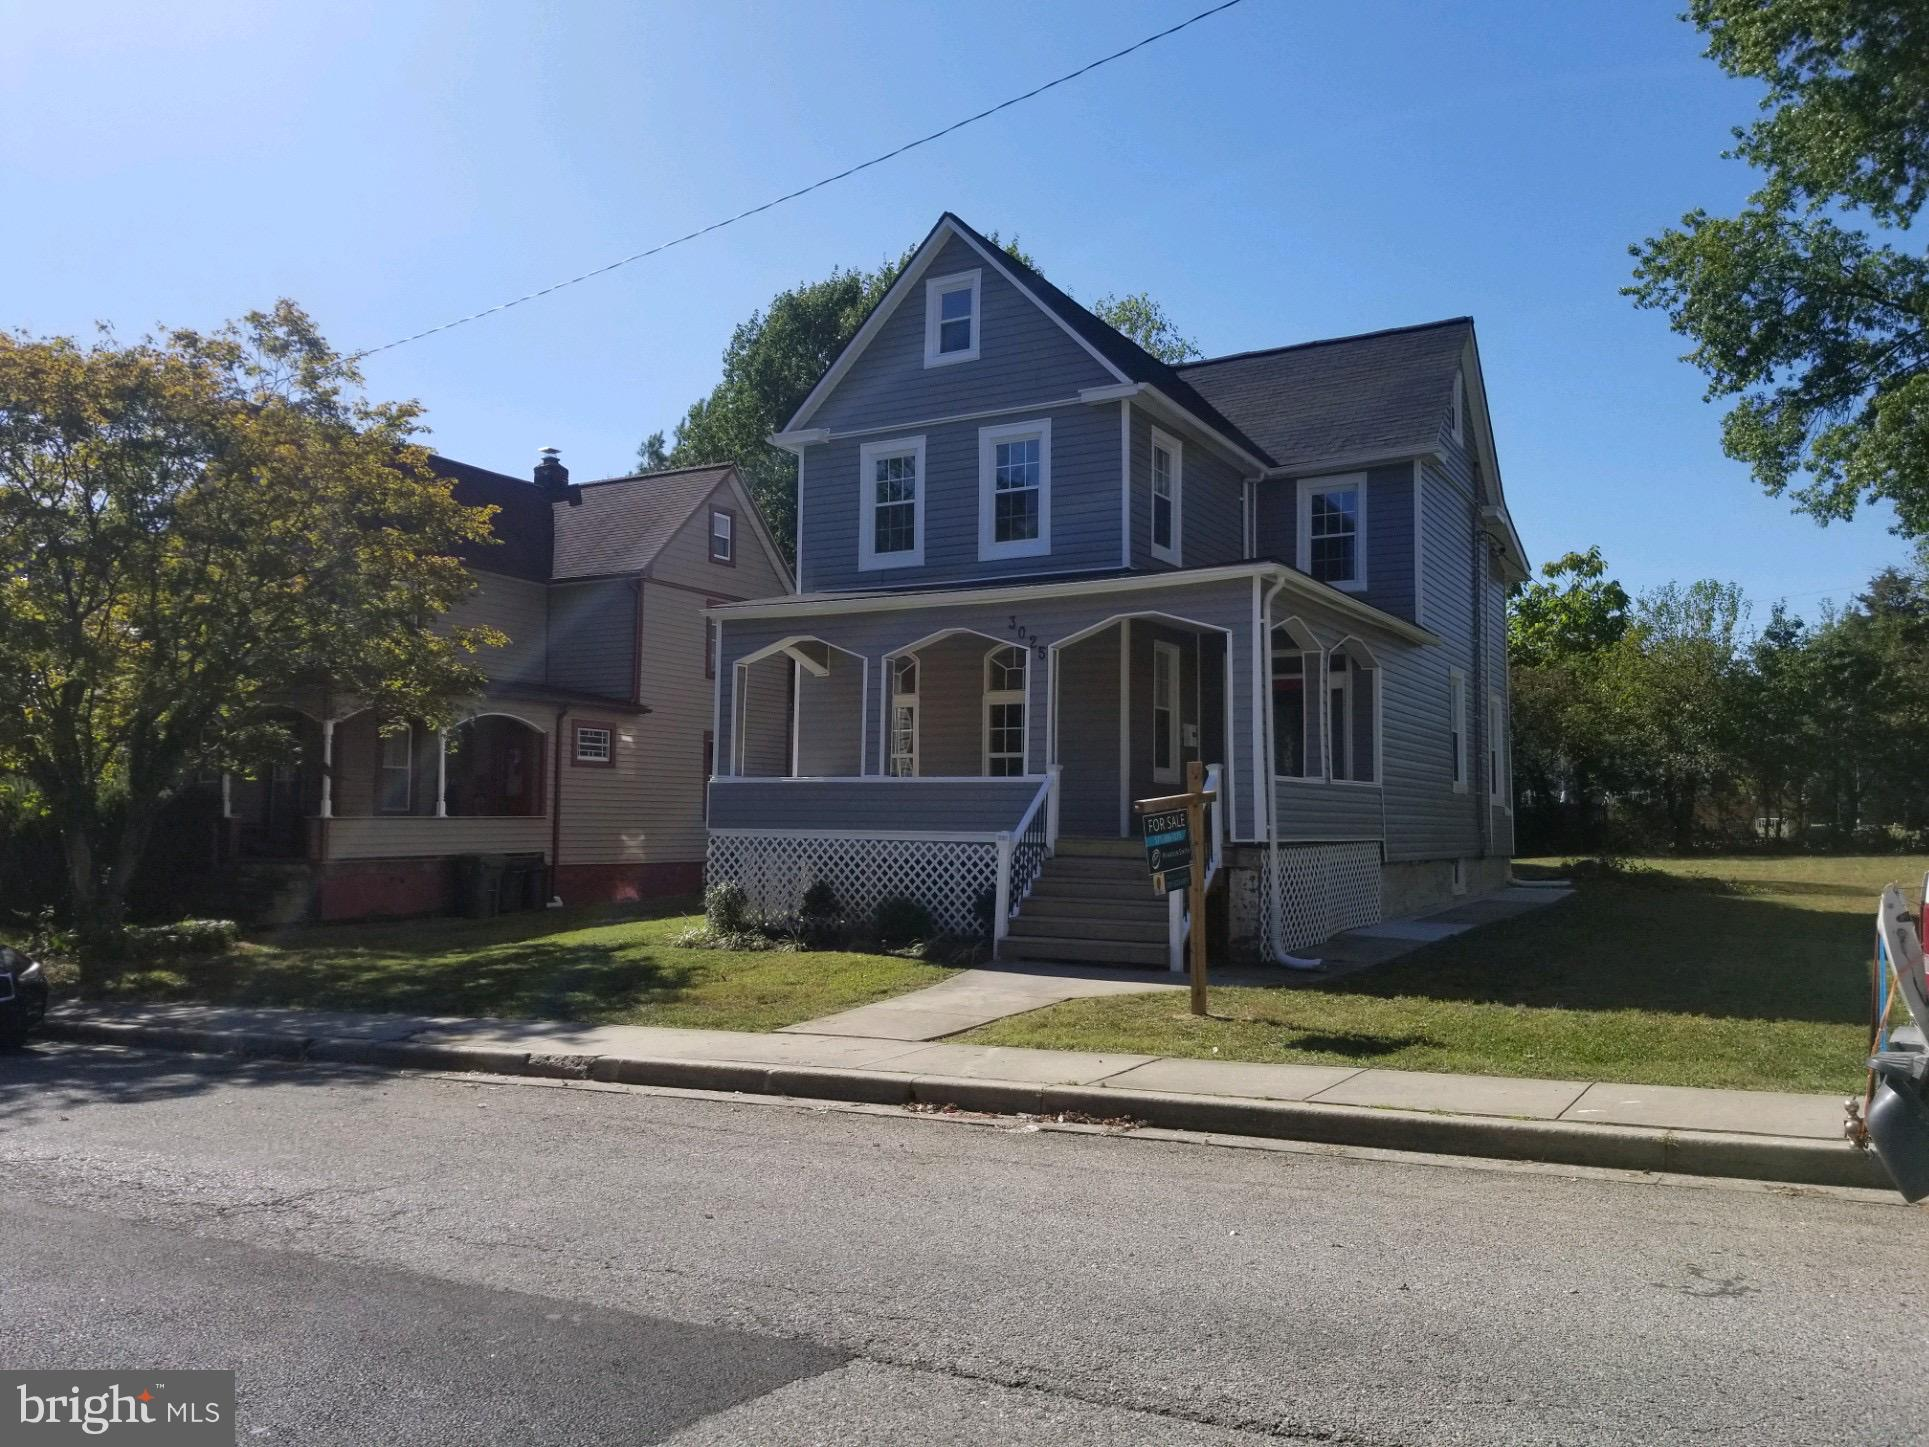 3025 MARY AVENUE, BALTIMORE, MD 21214